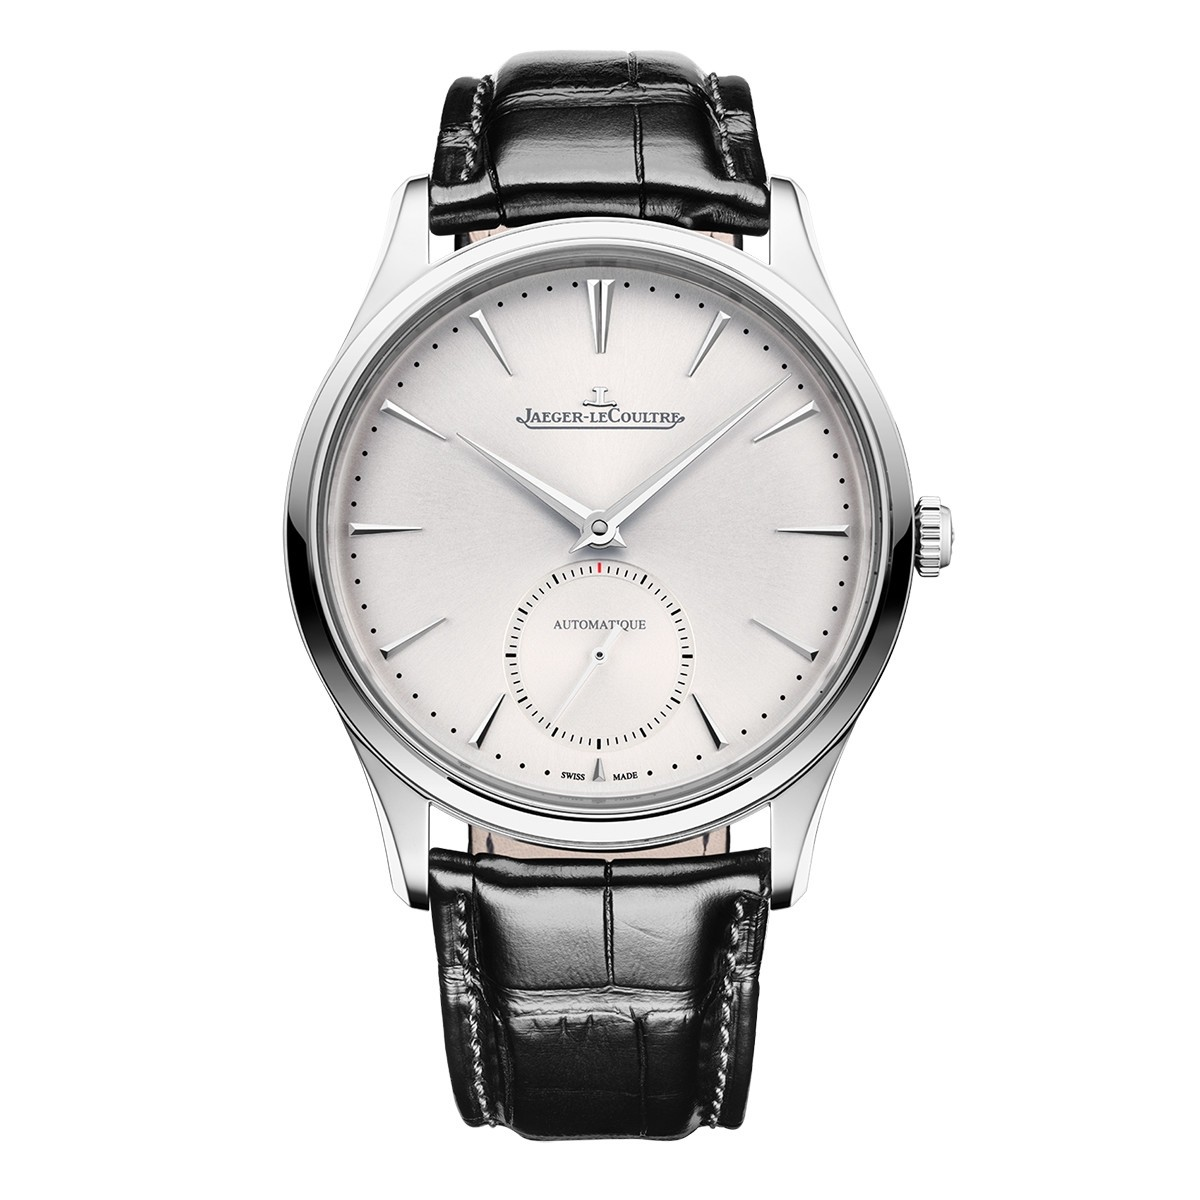 Jaeger-LeCoultre Master Ultra Thin small seconds